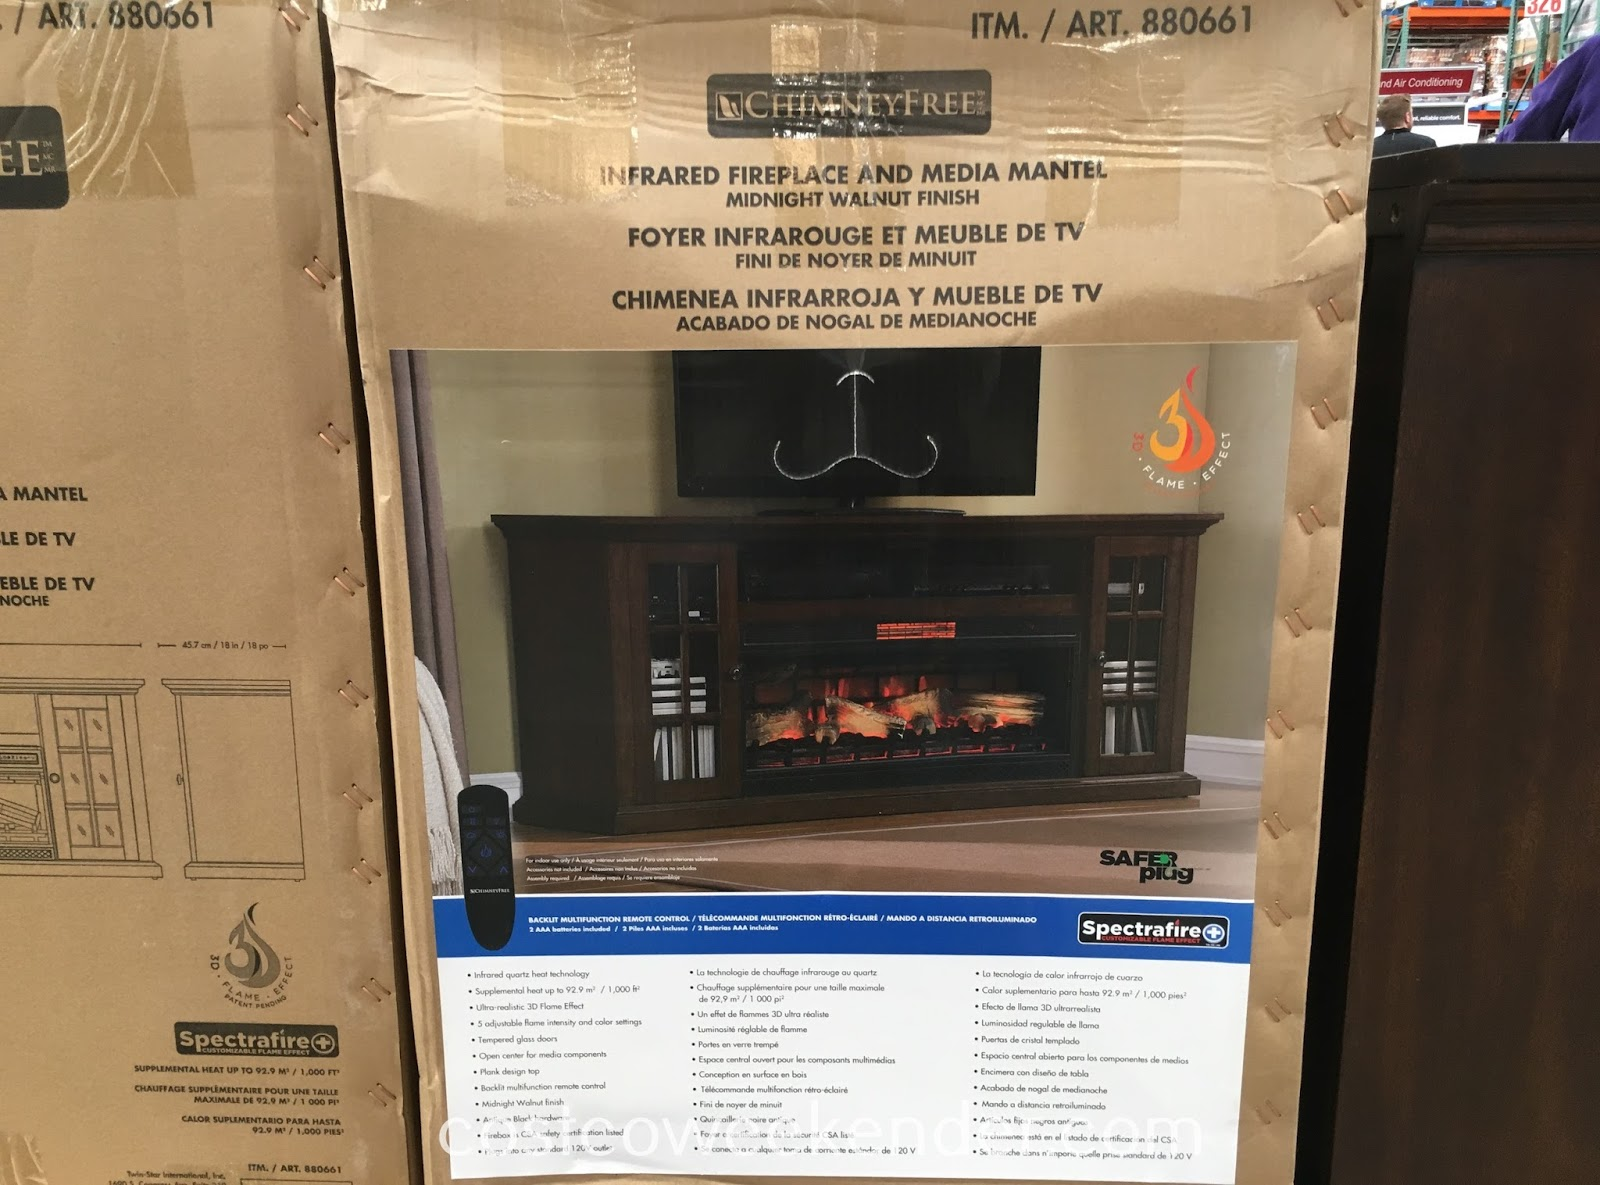 Tresanti Chimneyfree Infrared Fireplace And Media Mantel